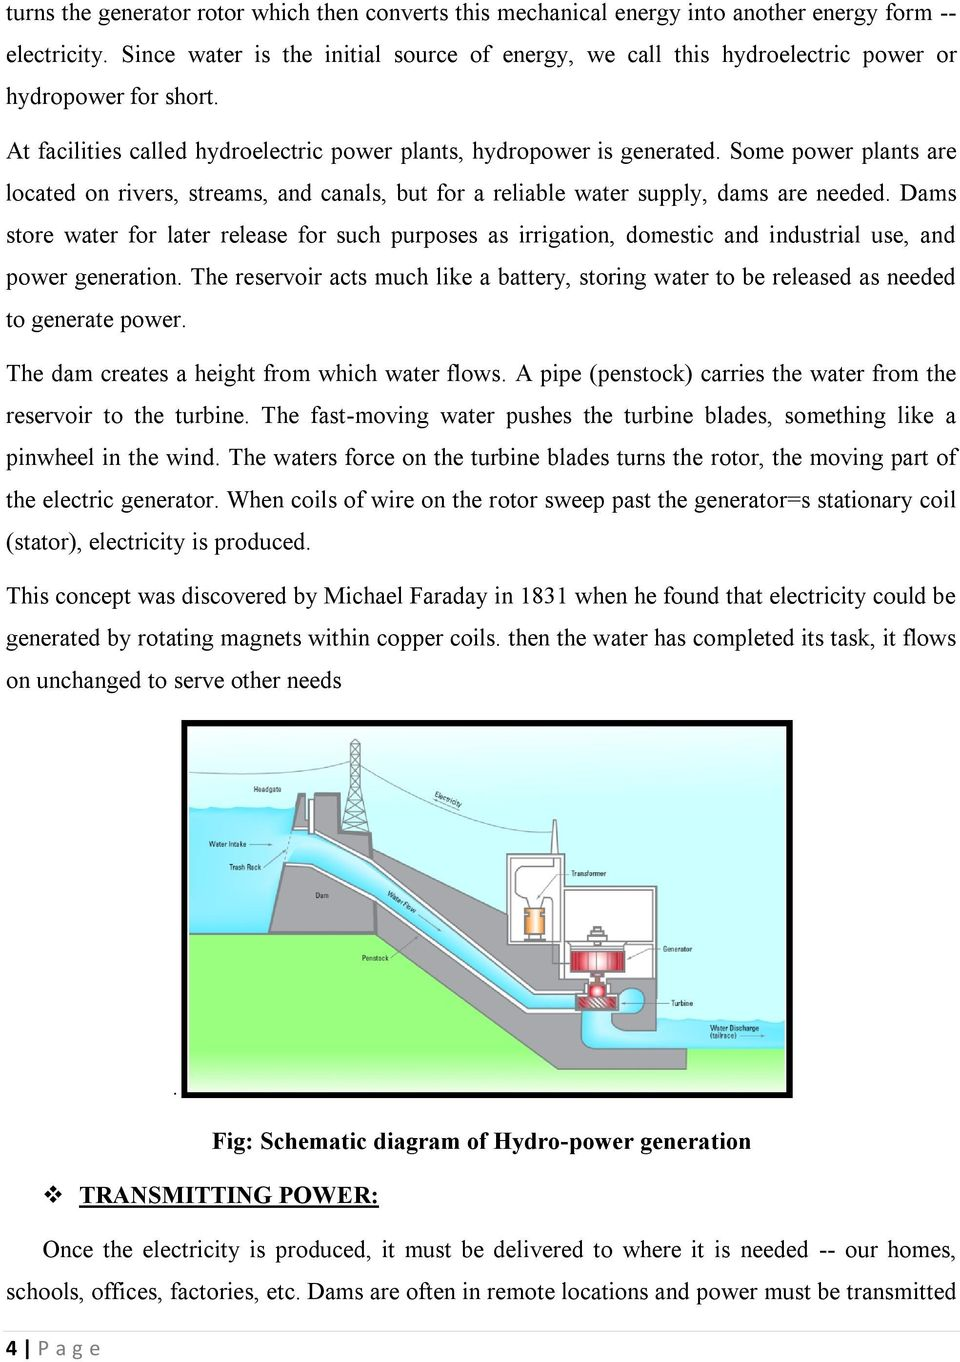 Report Of Educational Visit At Koyna Dam S Hydro Electric Power Plant Layout Diagram Some Plants Are Located On Rivers Streams And Canals But For A